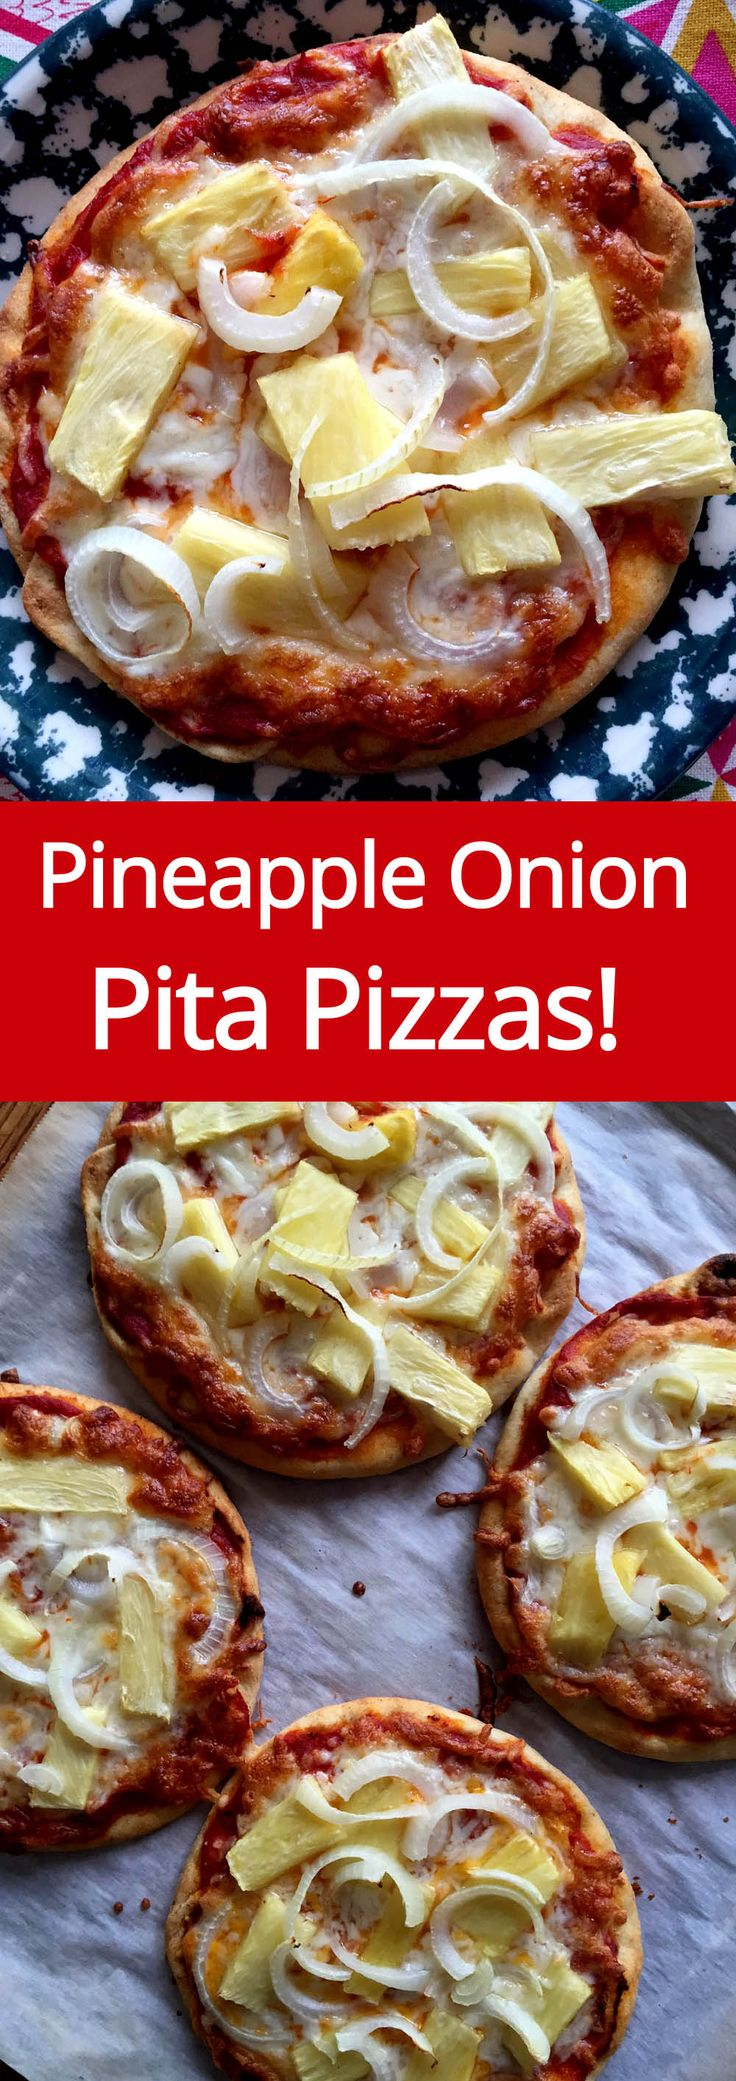 Pineapple Onion Pita Pizza Recipe - super easy way to make individual pizzas! (from MelanieCooks.com)